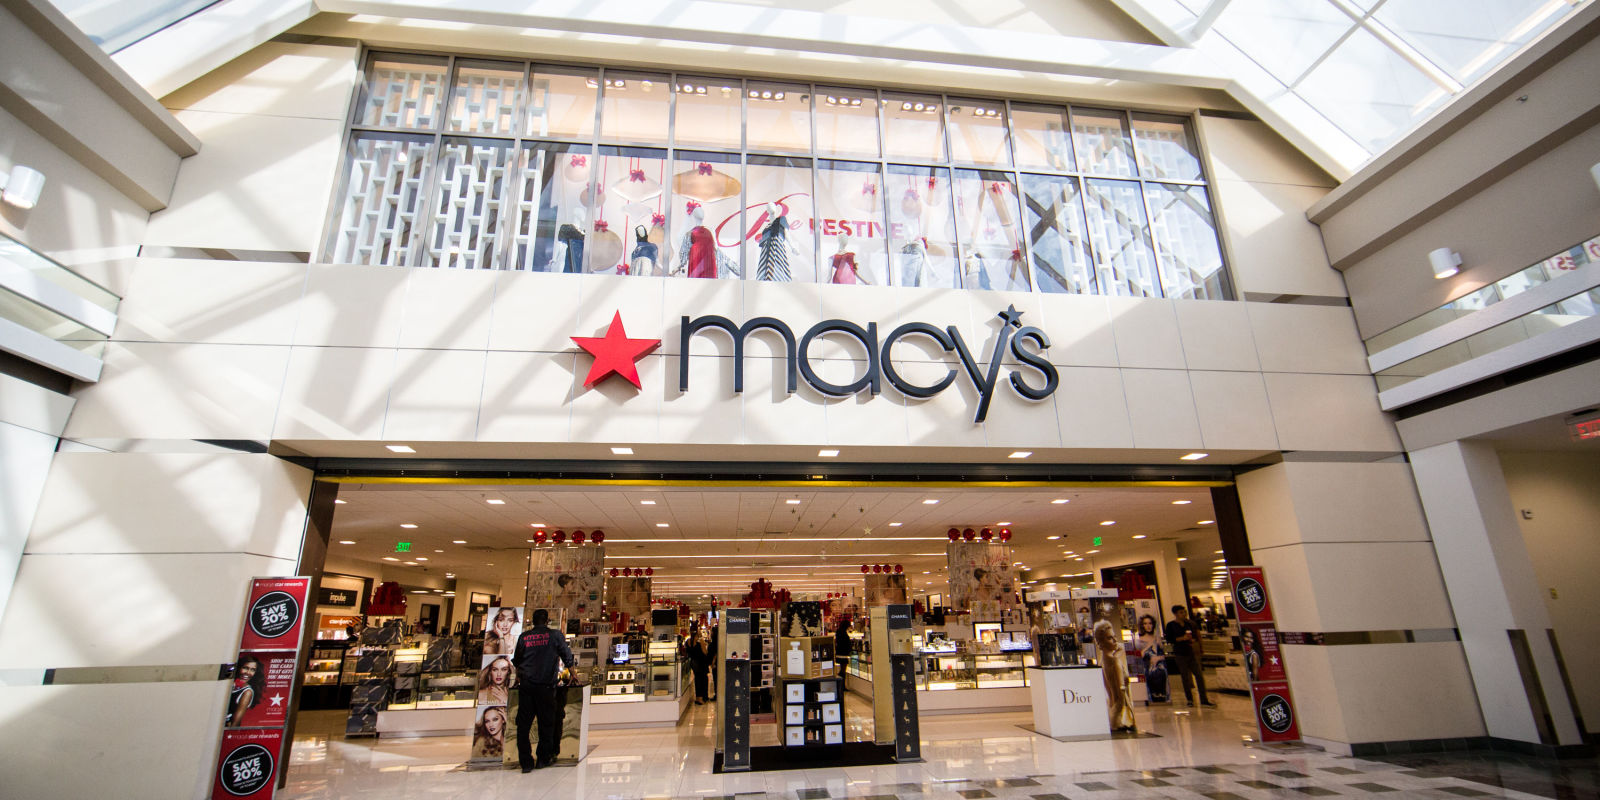 Women s Clothing Clearance Sale Are you looking to find the hottest trends at affordable prices? Check out the women's clothing clearance sale at Macy's for awesome deals on must-have looks.